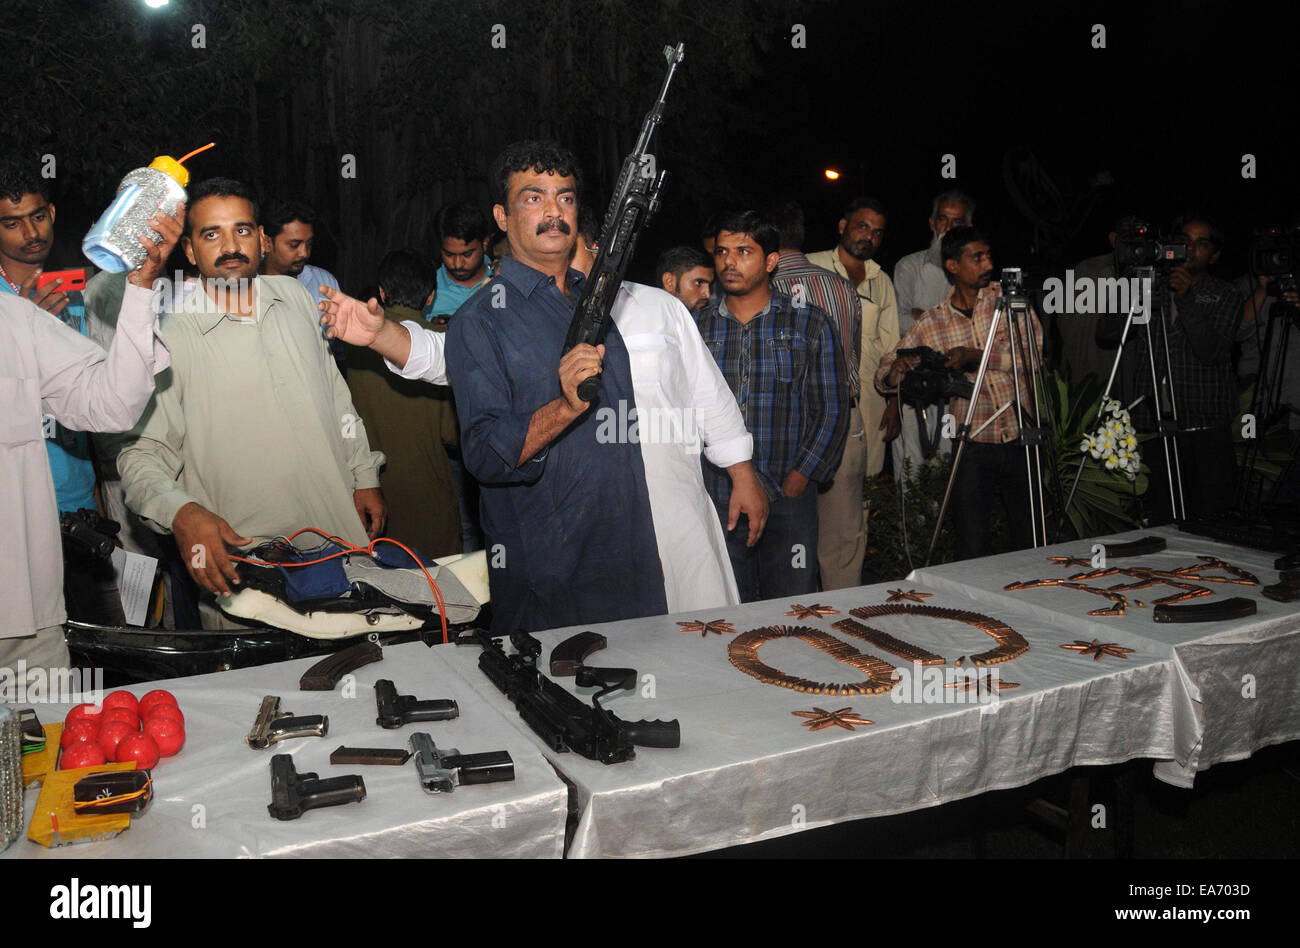 Cid Seized Weapons Stock Photos & Cid Seized Weapons Stock